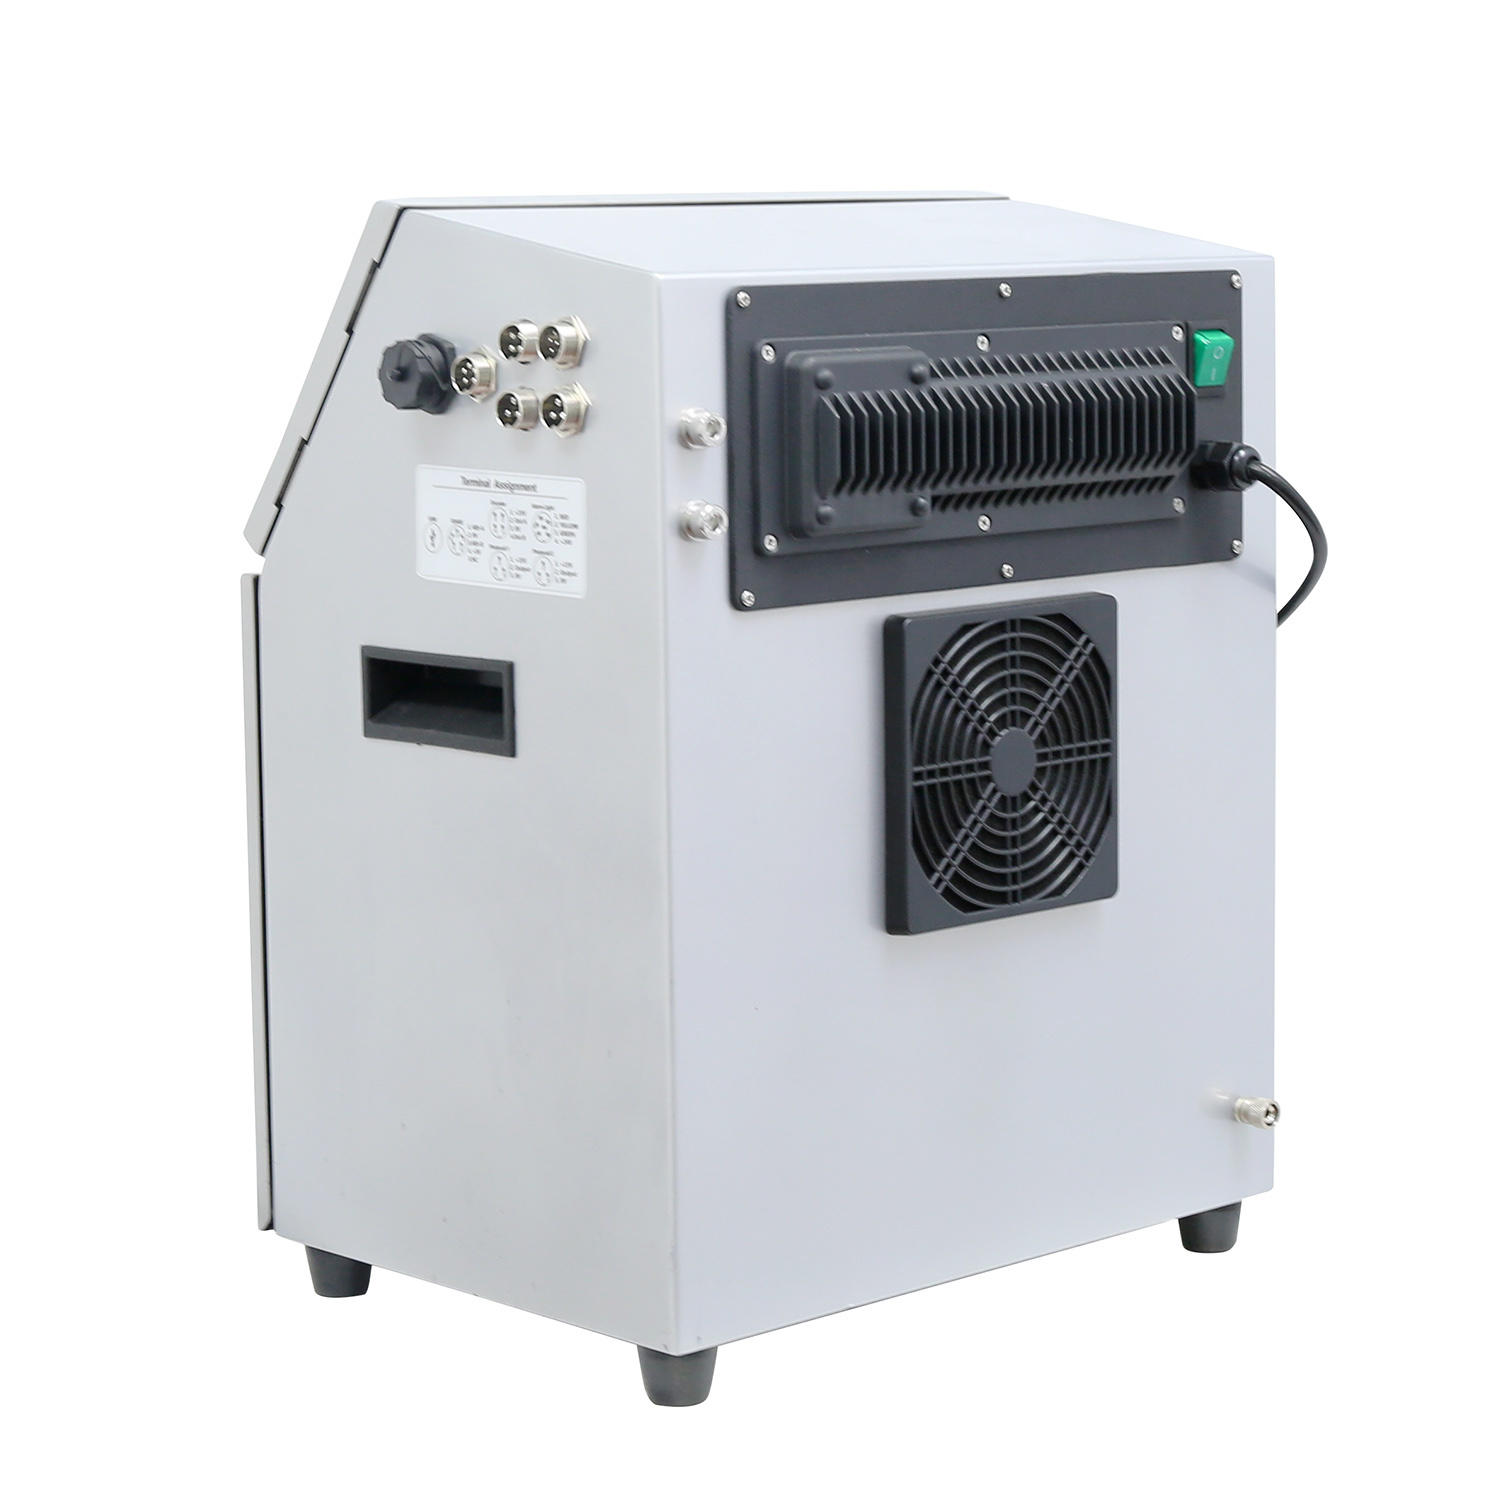 Leadtech Lt800 Thermal Inkjet Printer for Dating Printing